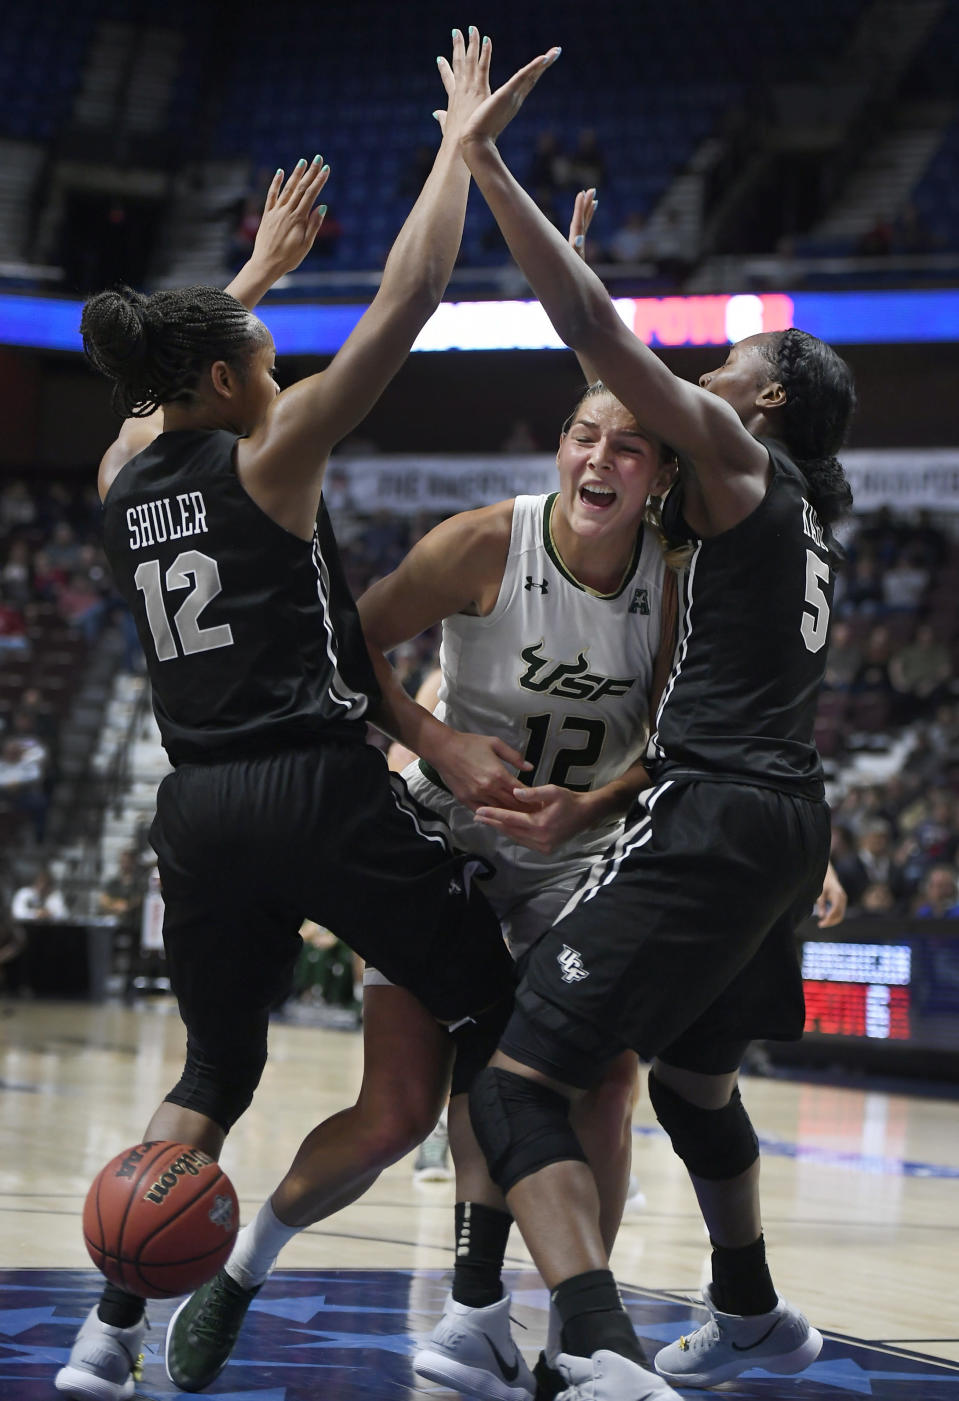 South Florida's Maria Jespersen, center, looses the ball under pressure from Central Florida's Nyala Shuler , left, and Masseny Kaba , right, during the first half of an NCAA college basketball game in the American Athletic Conference tournament semifinals at Mohegan Sun Arena, Monday, March 5, 2018, in Uncasville, Conn. (AP Photo/Jessica Hill)